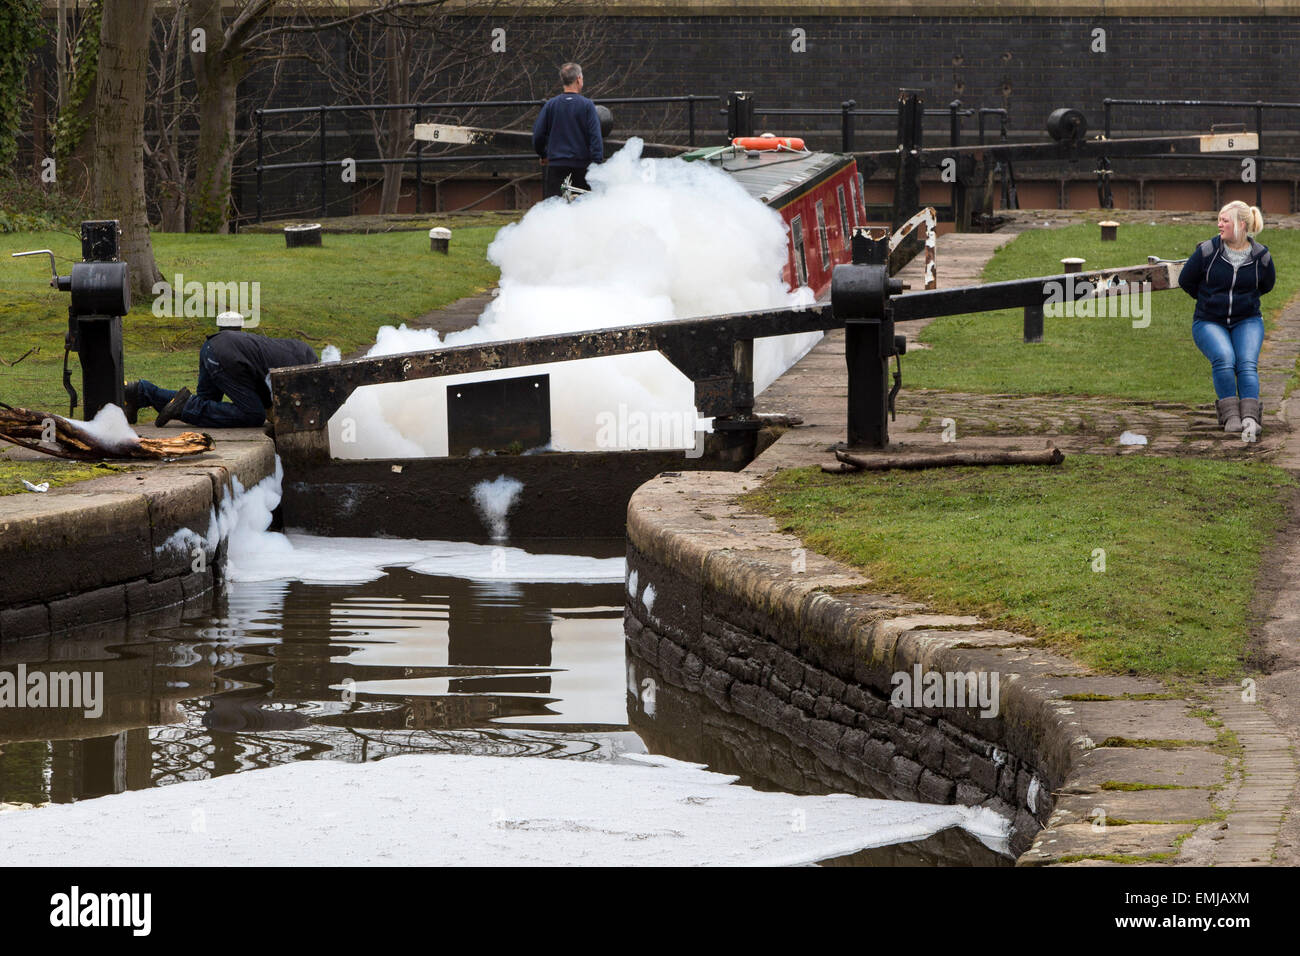 Manchester Ashton canal - a wall of foam appears on the canal after a fire at a nearby chemical plant - Stock Image